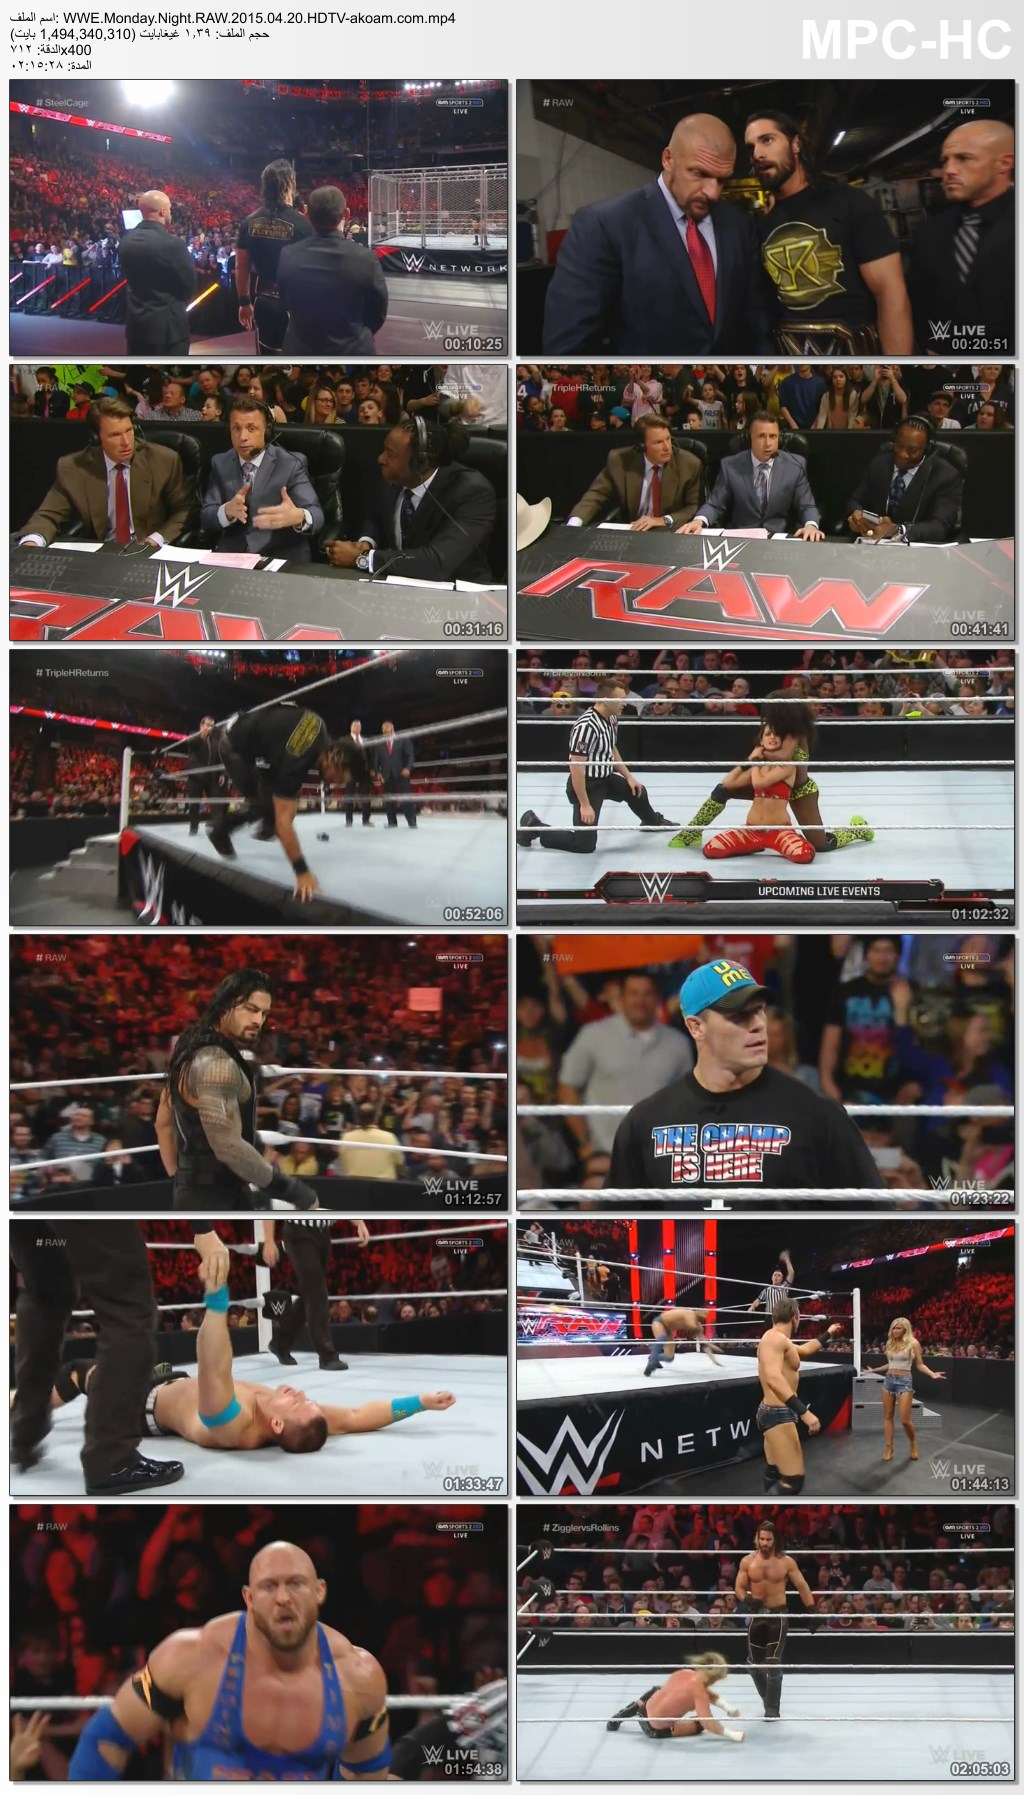 Monday,Night,WWE,RAW